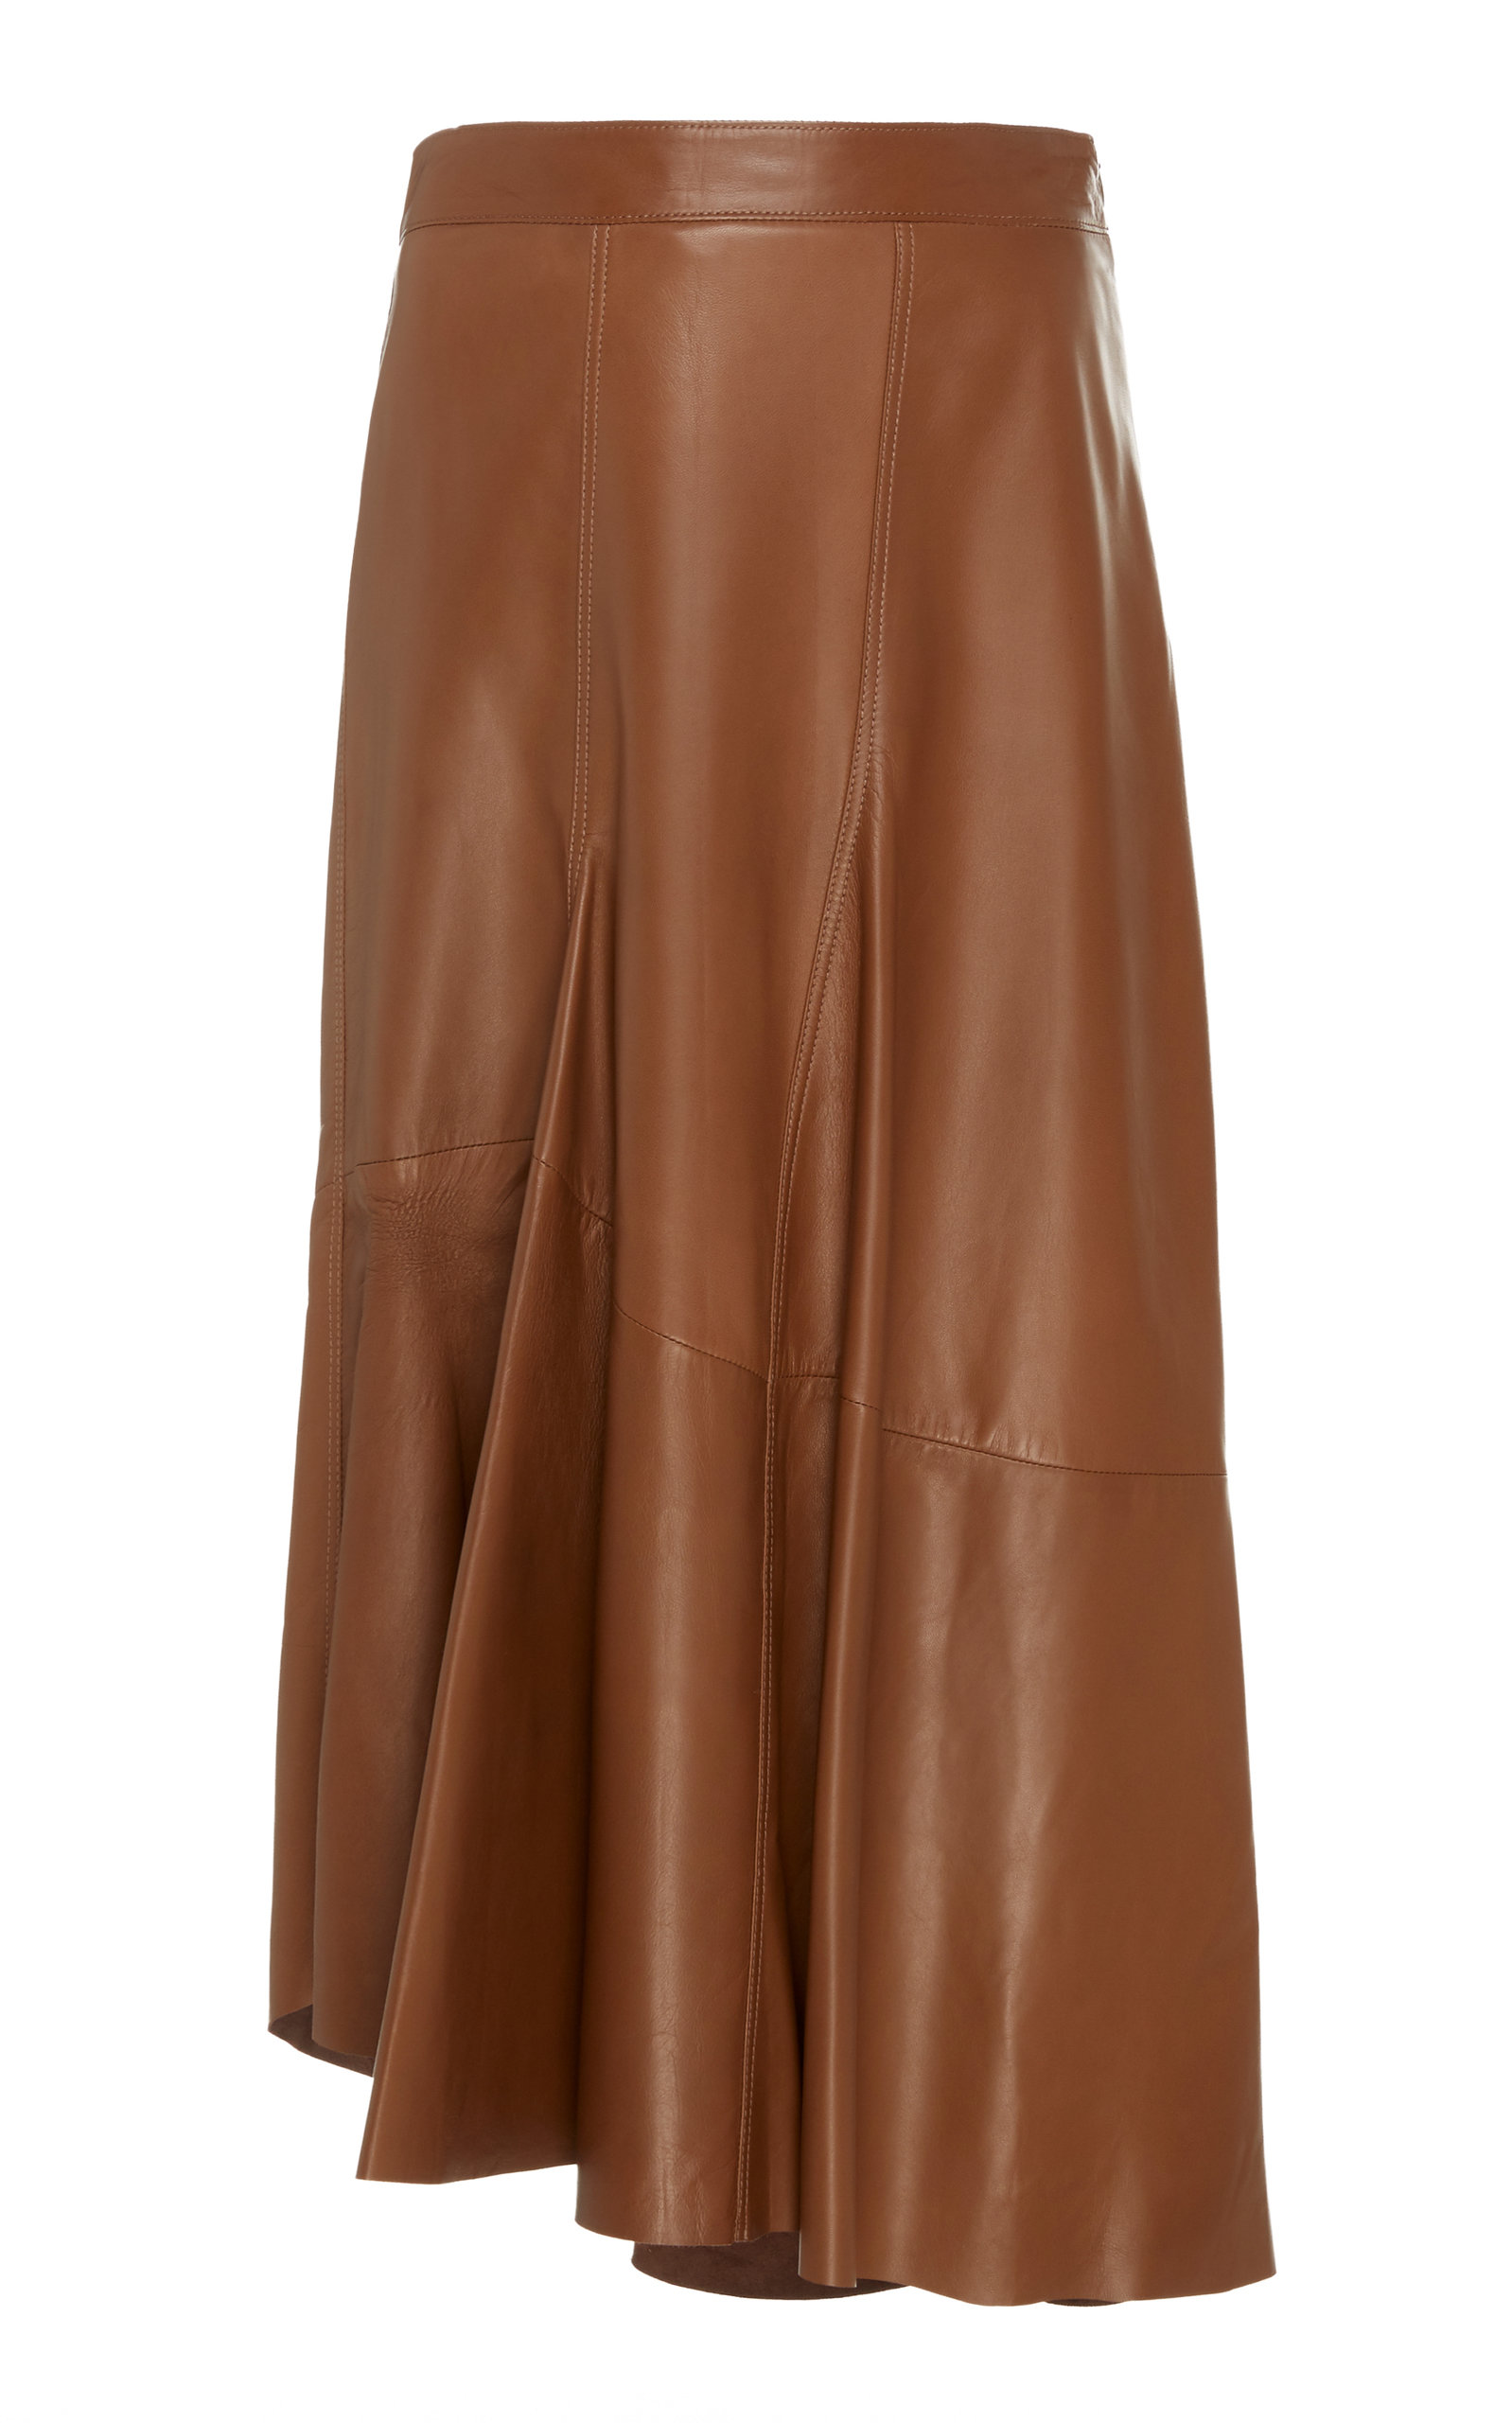 0e9624fd57 High-Waisted Leather Midi Skirt by Brunello Cucinelli | Moda Operandi